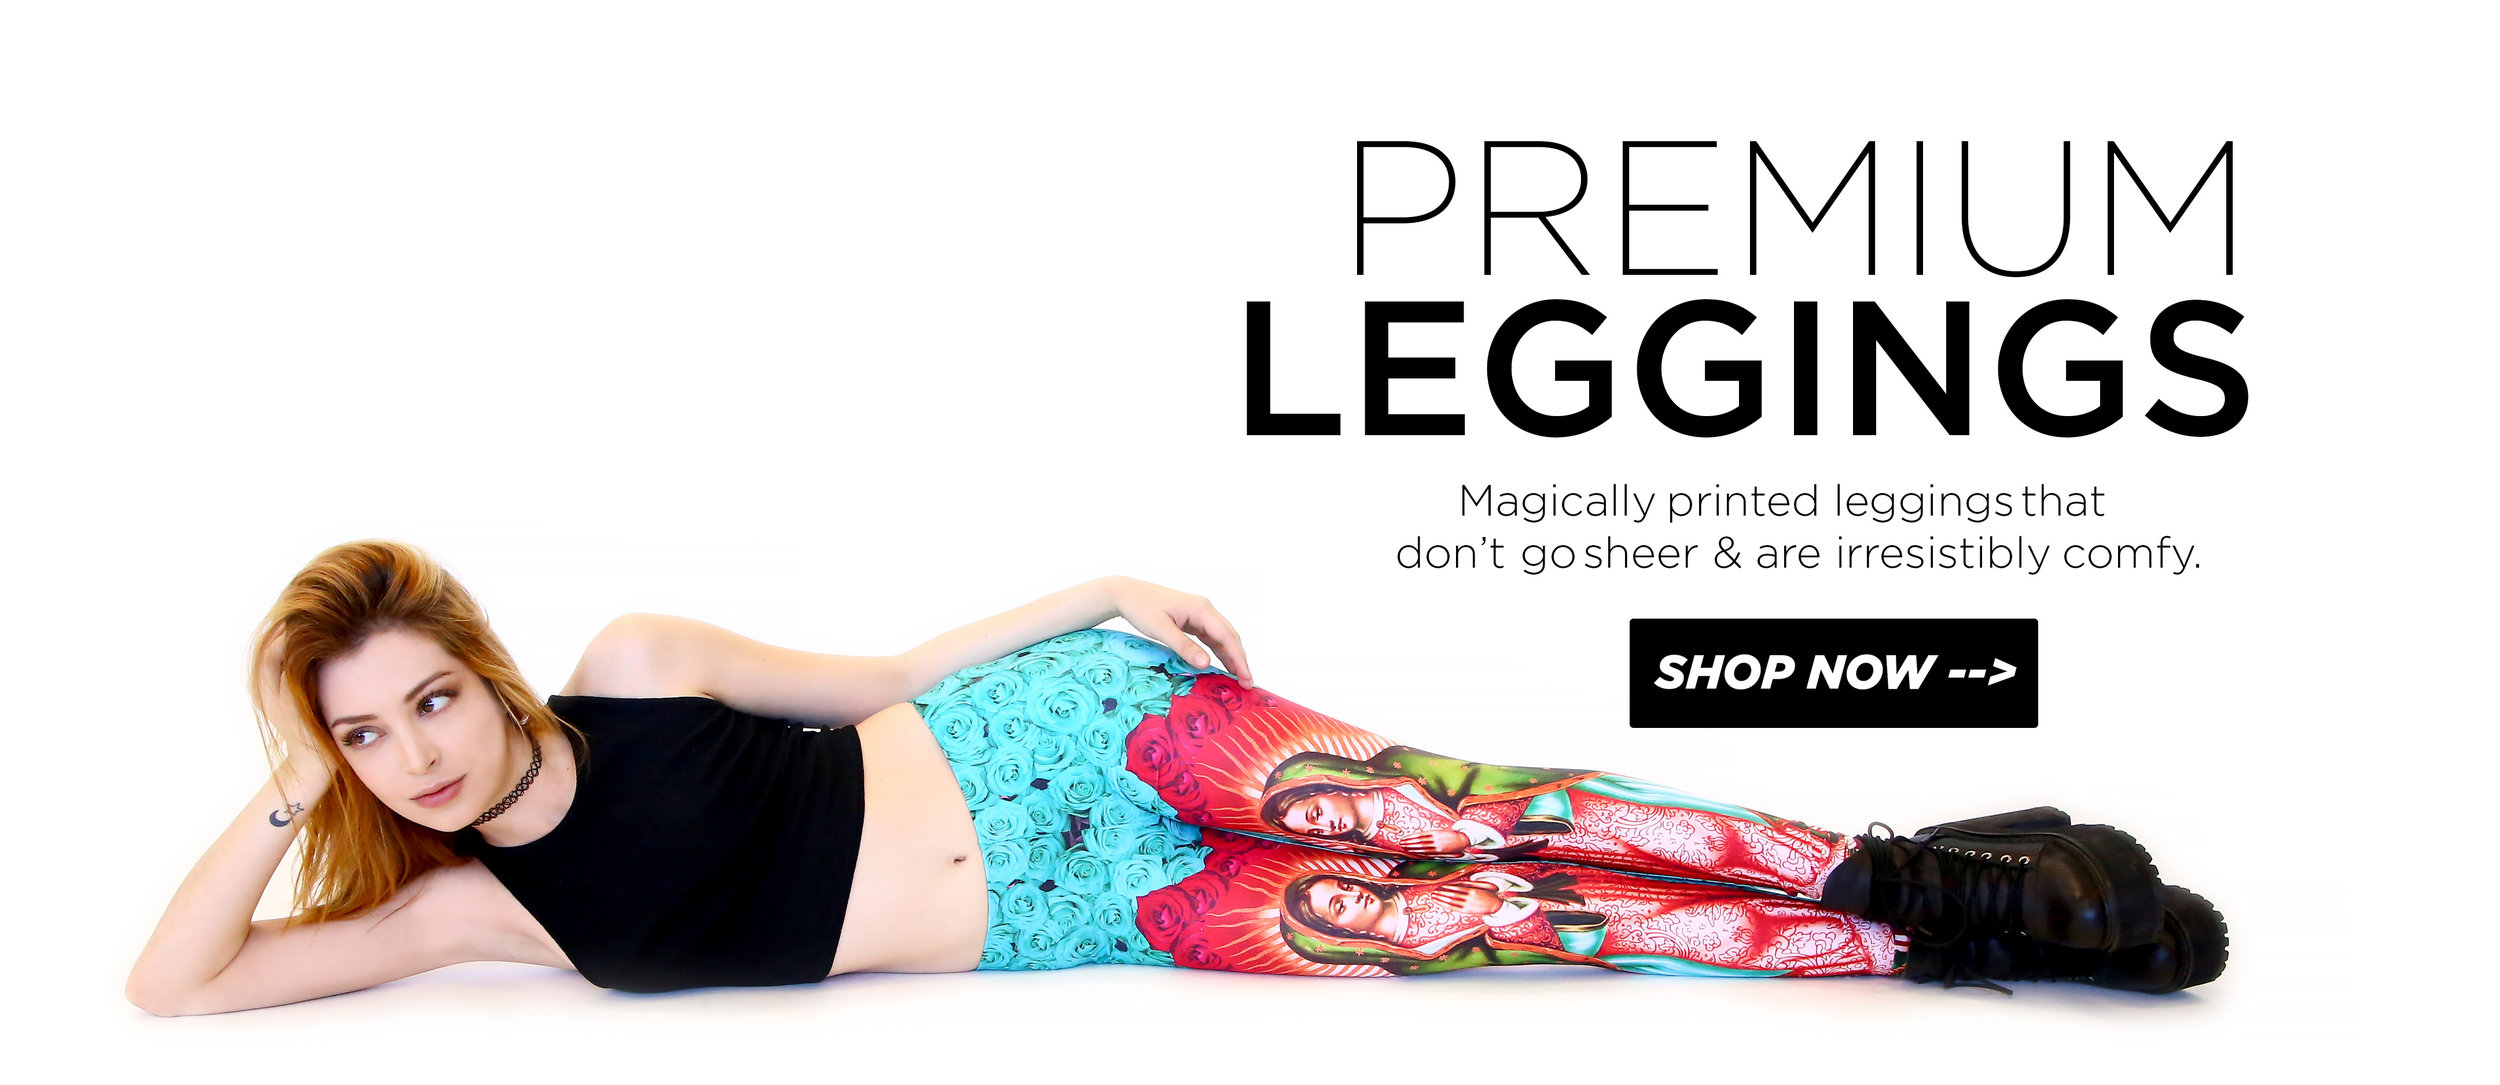 PremiumLeggings-homepage-Banner-1.jpg